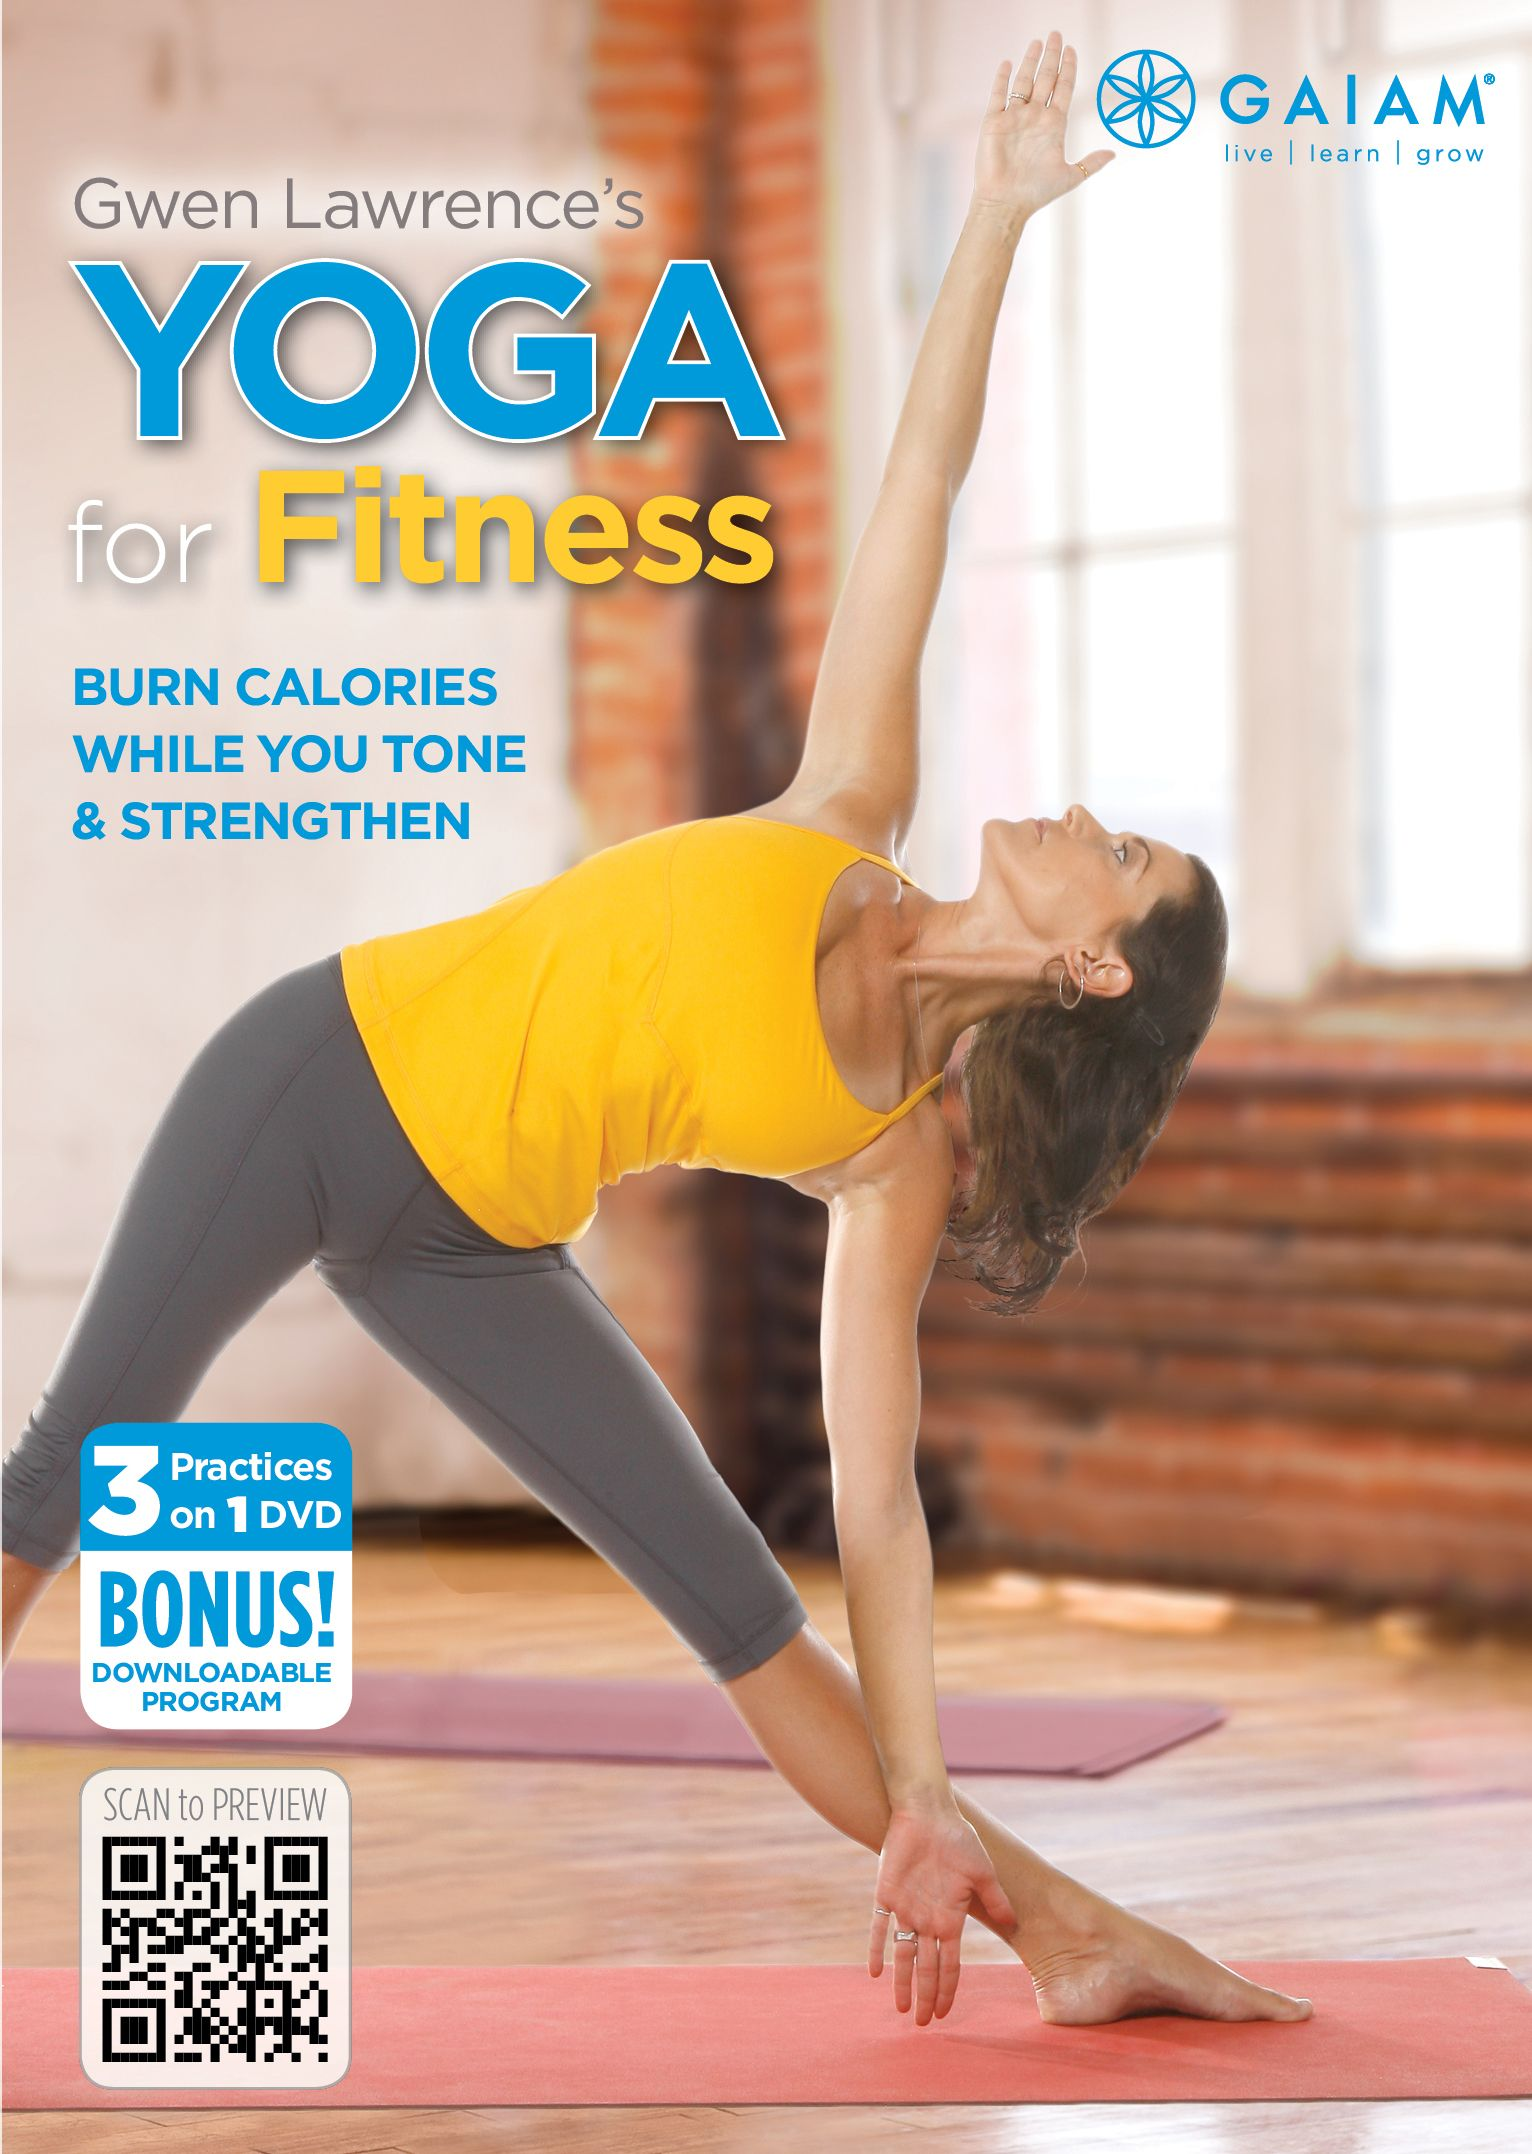 Gwen Lawrence's Yoga for Fitness